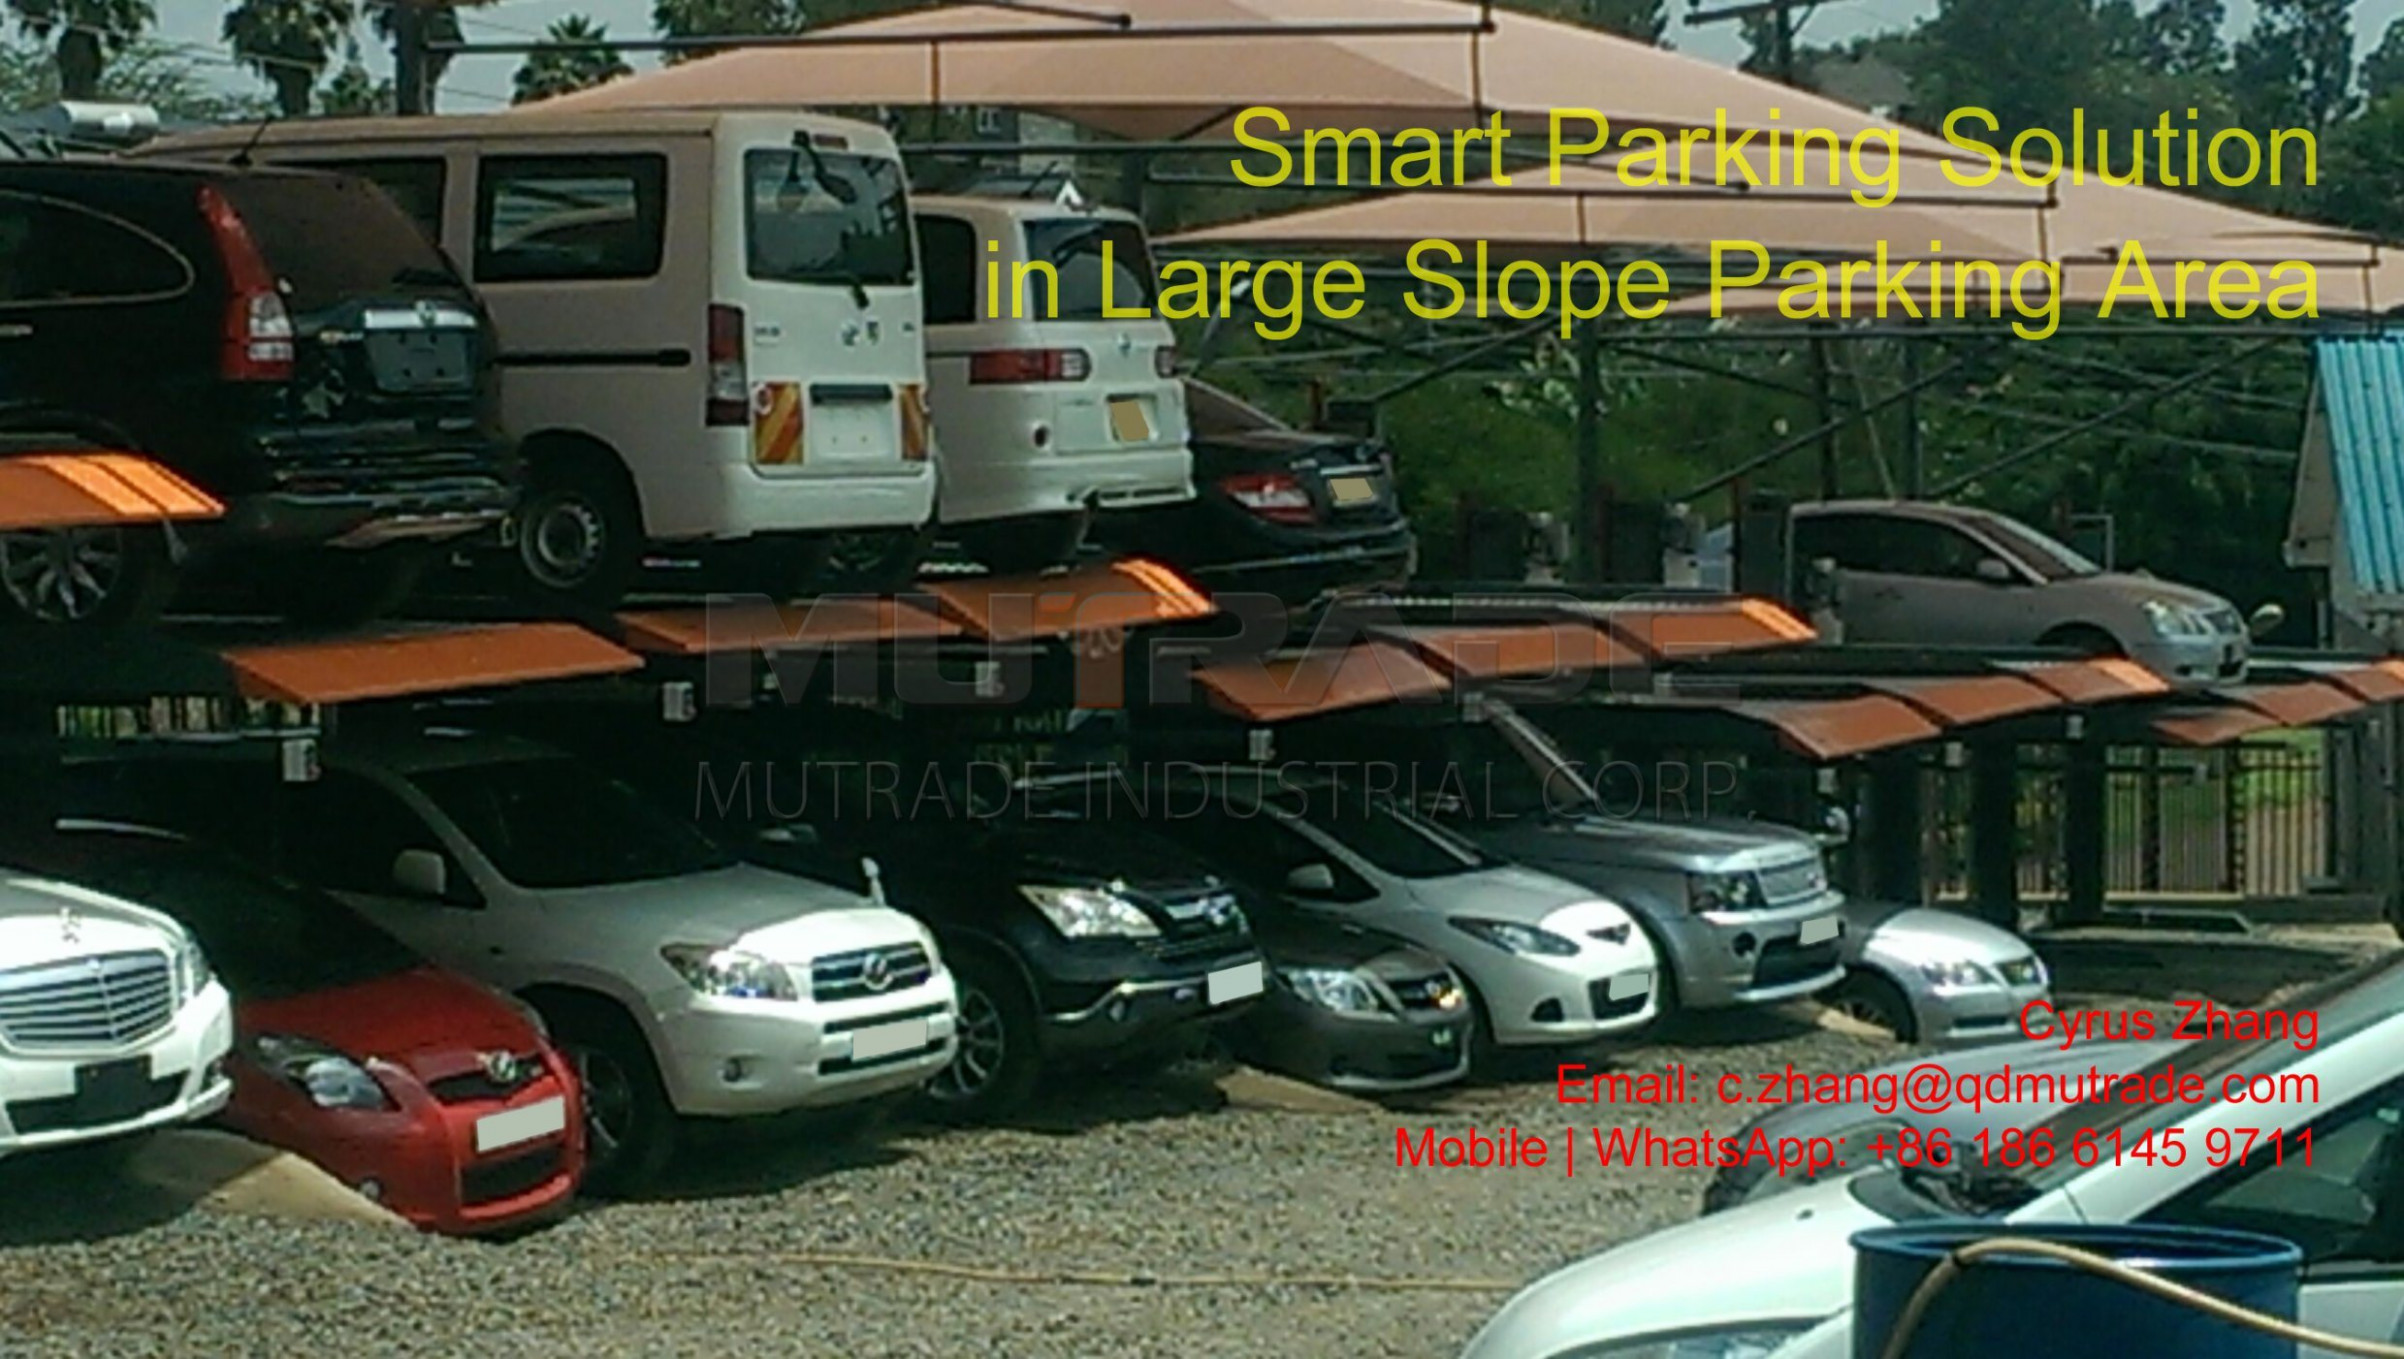 Best Quality 13 Storey Hydraulic Parking Lots Carport Parking Equipment Carport Valet Parking